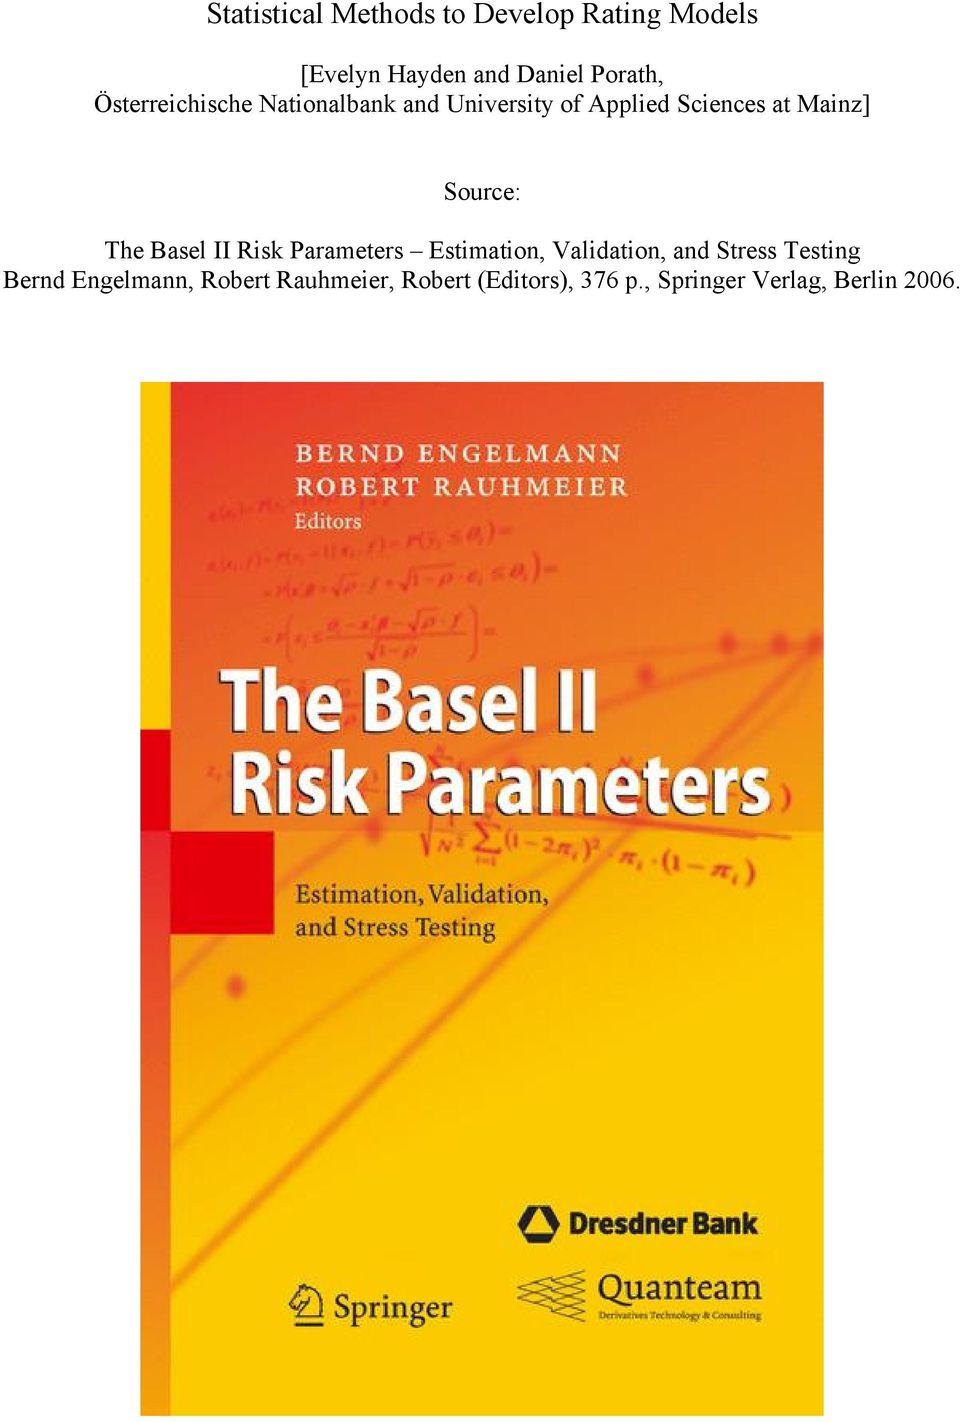 The Basel II Rsk Parameters Estmaton, Valdaton, and Stress Testng Bernd